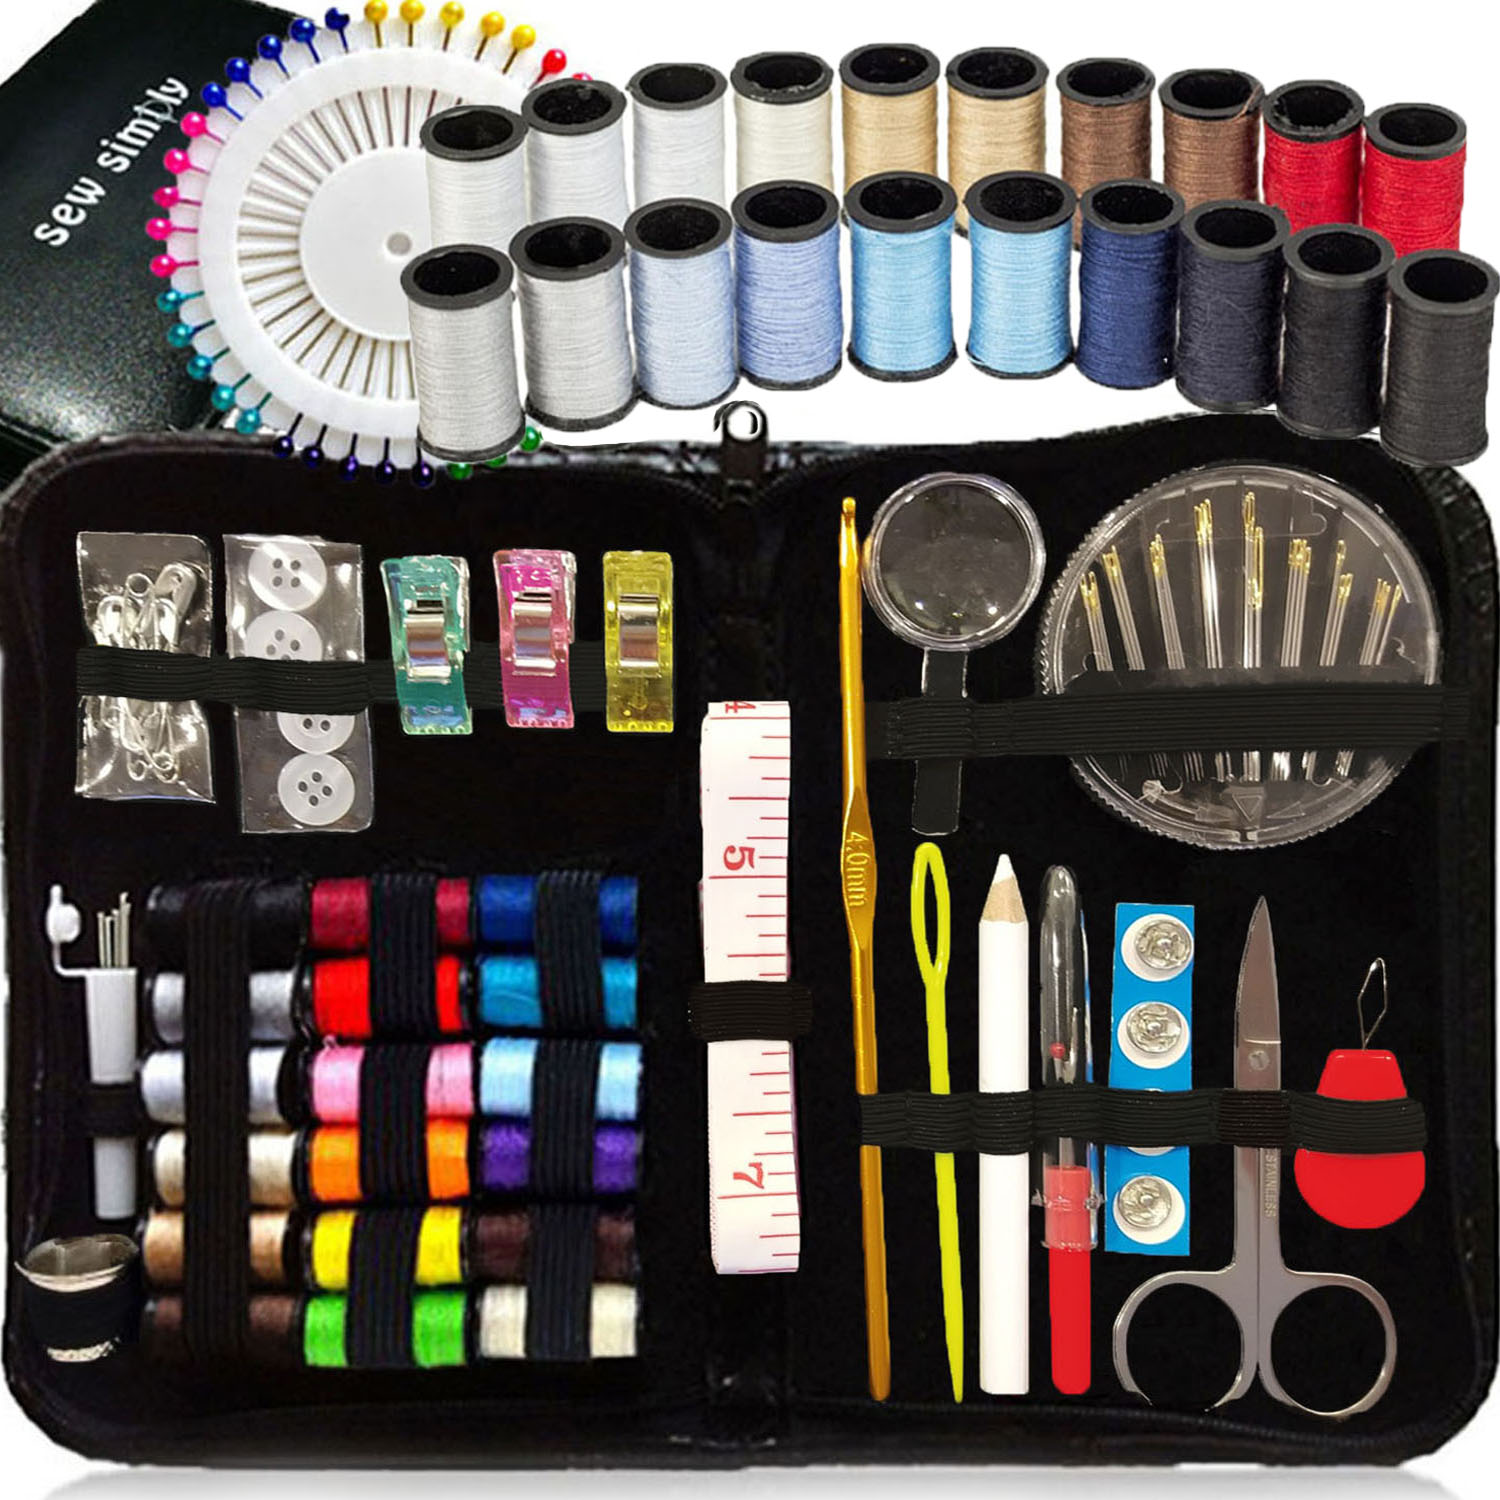 SEWING KIT, Over 130 DIY Premium Sewing Supplies, Mini ...